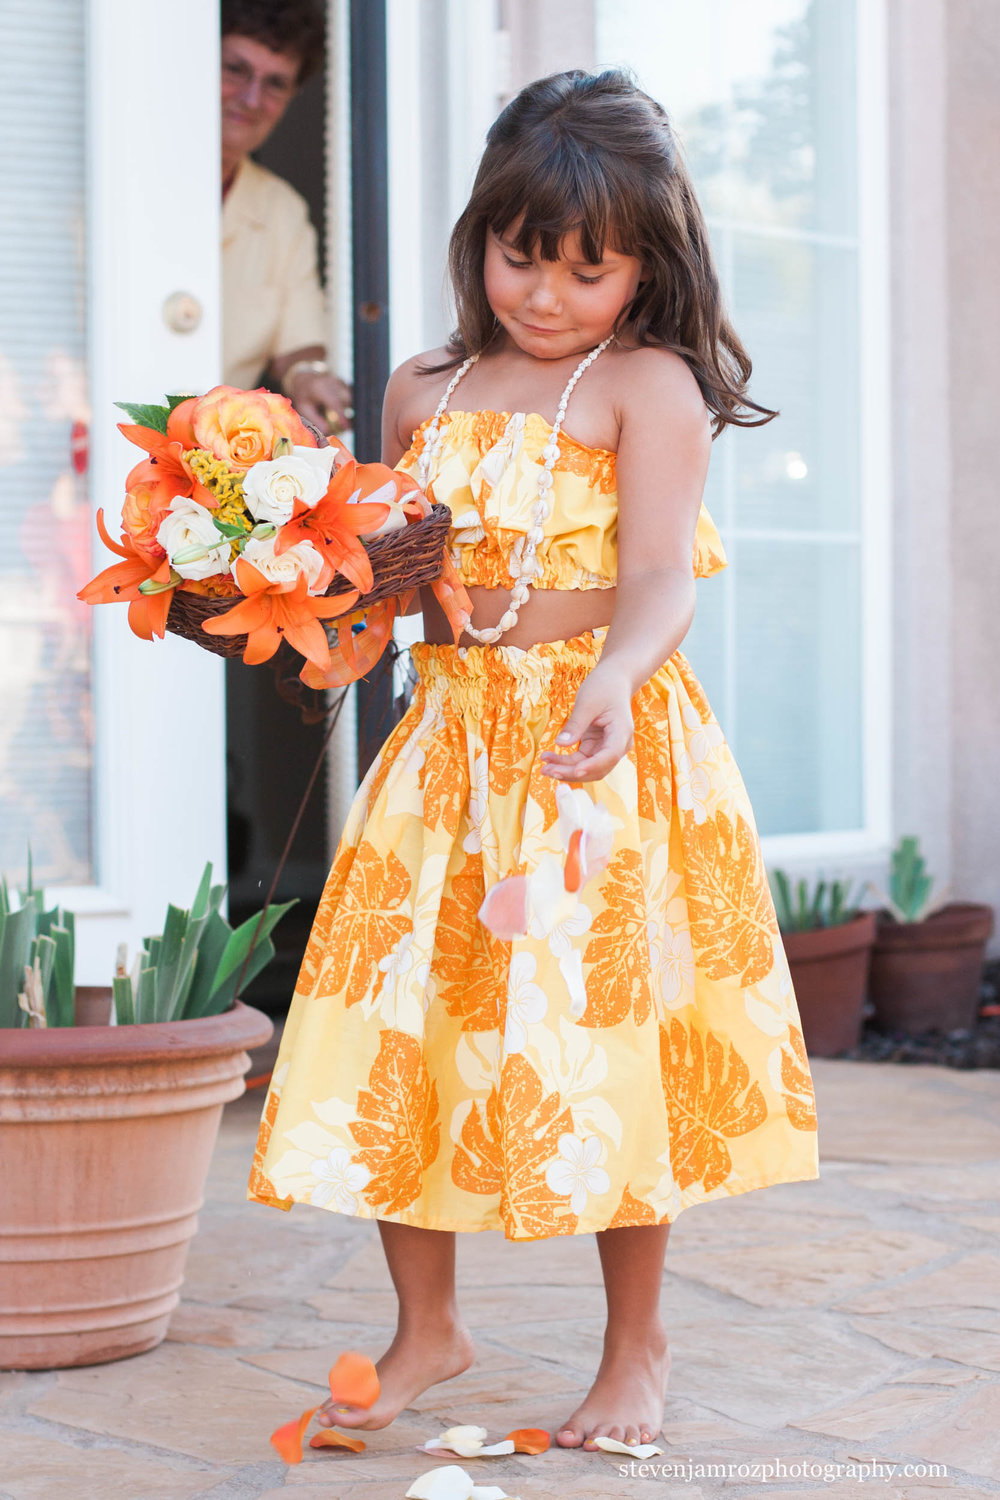 adorable-flowergirl-steven-jamroz-photography-0267.jpg